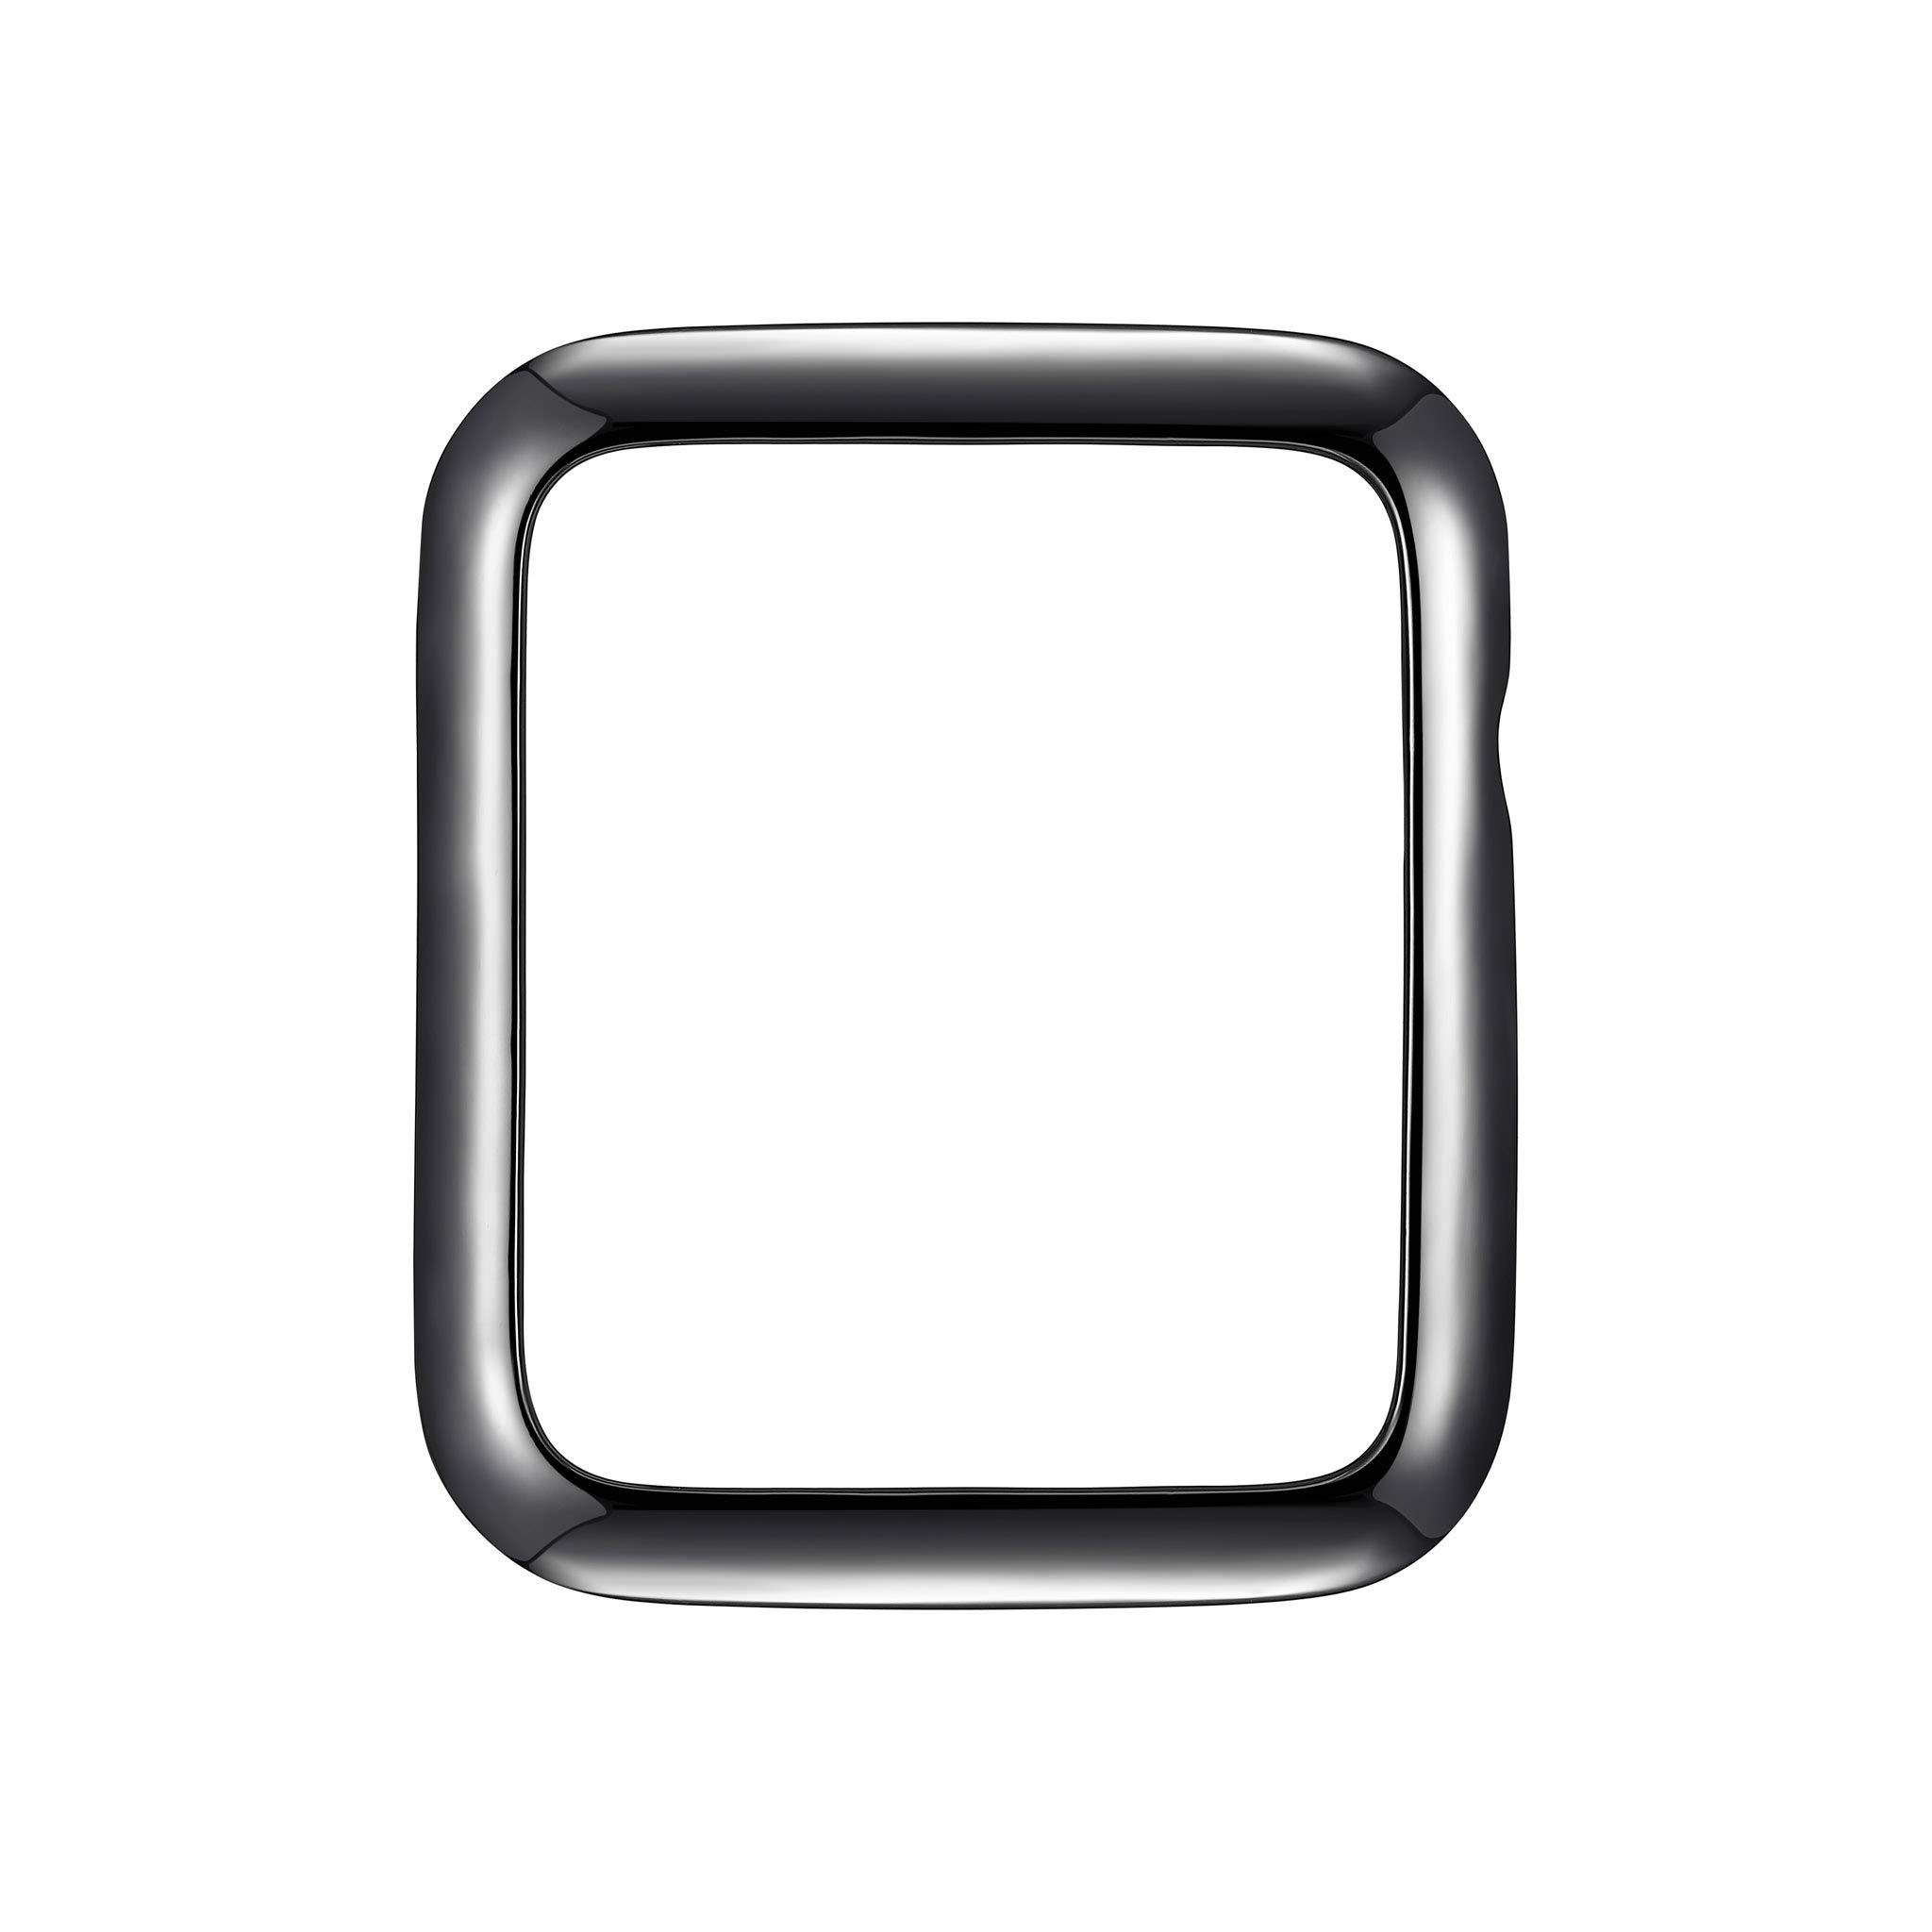 Gunmetal Gray Rhodium Plated Minimalist Sleek Jewelry-Style Apple Watch Case - Color & Size Options - Medium (Fits 40mm Series 4 iWatch) by SKYB